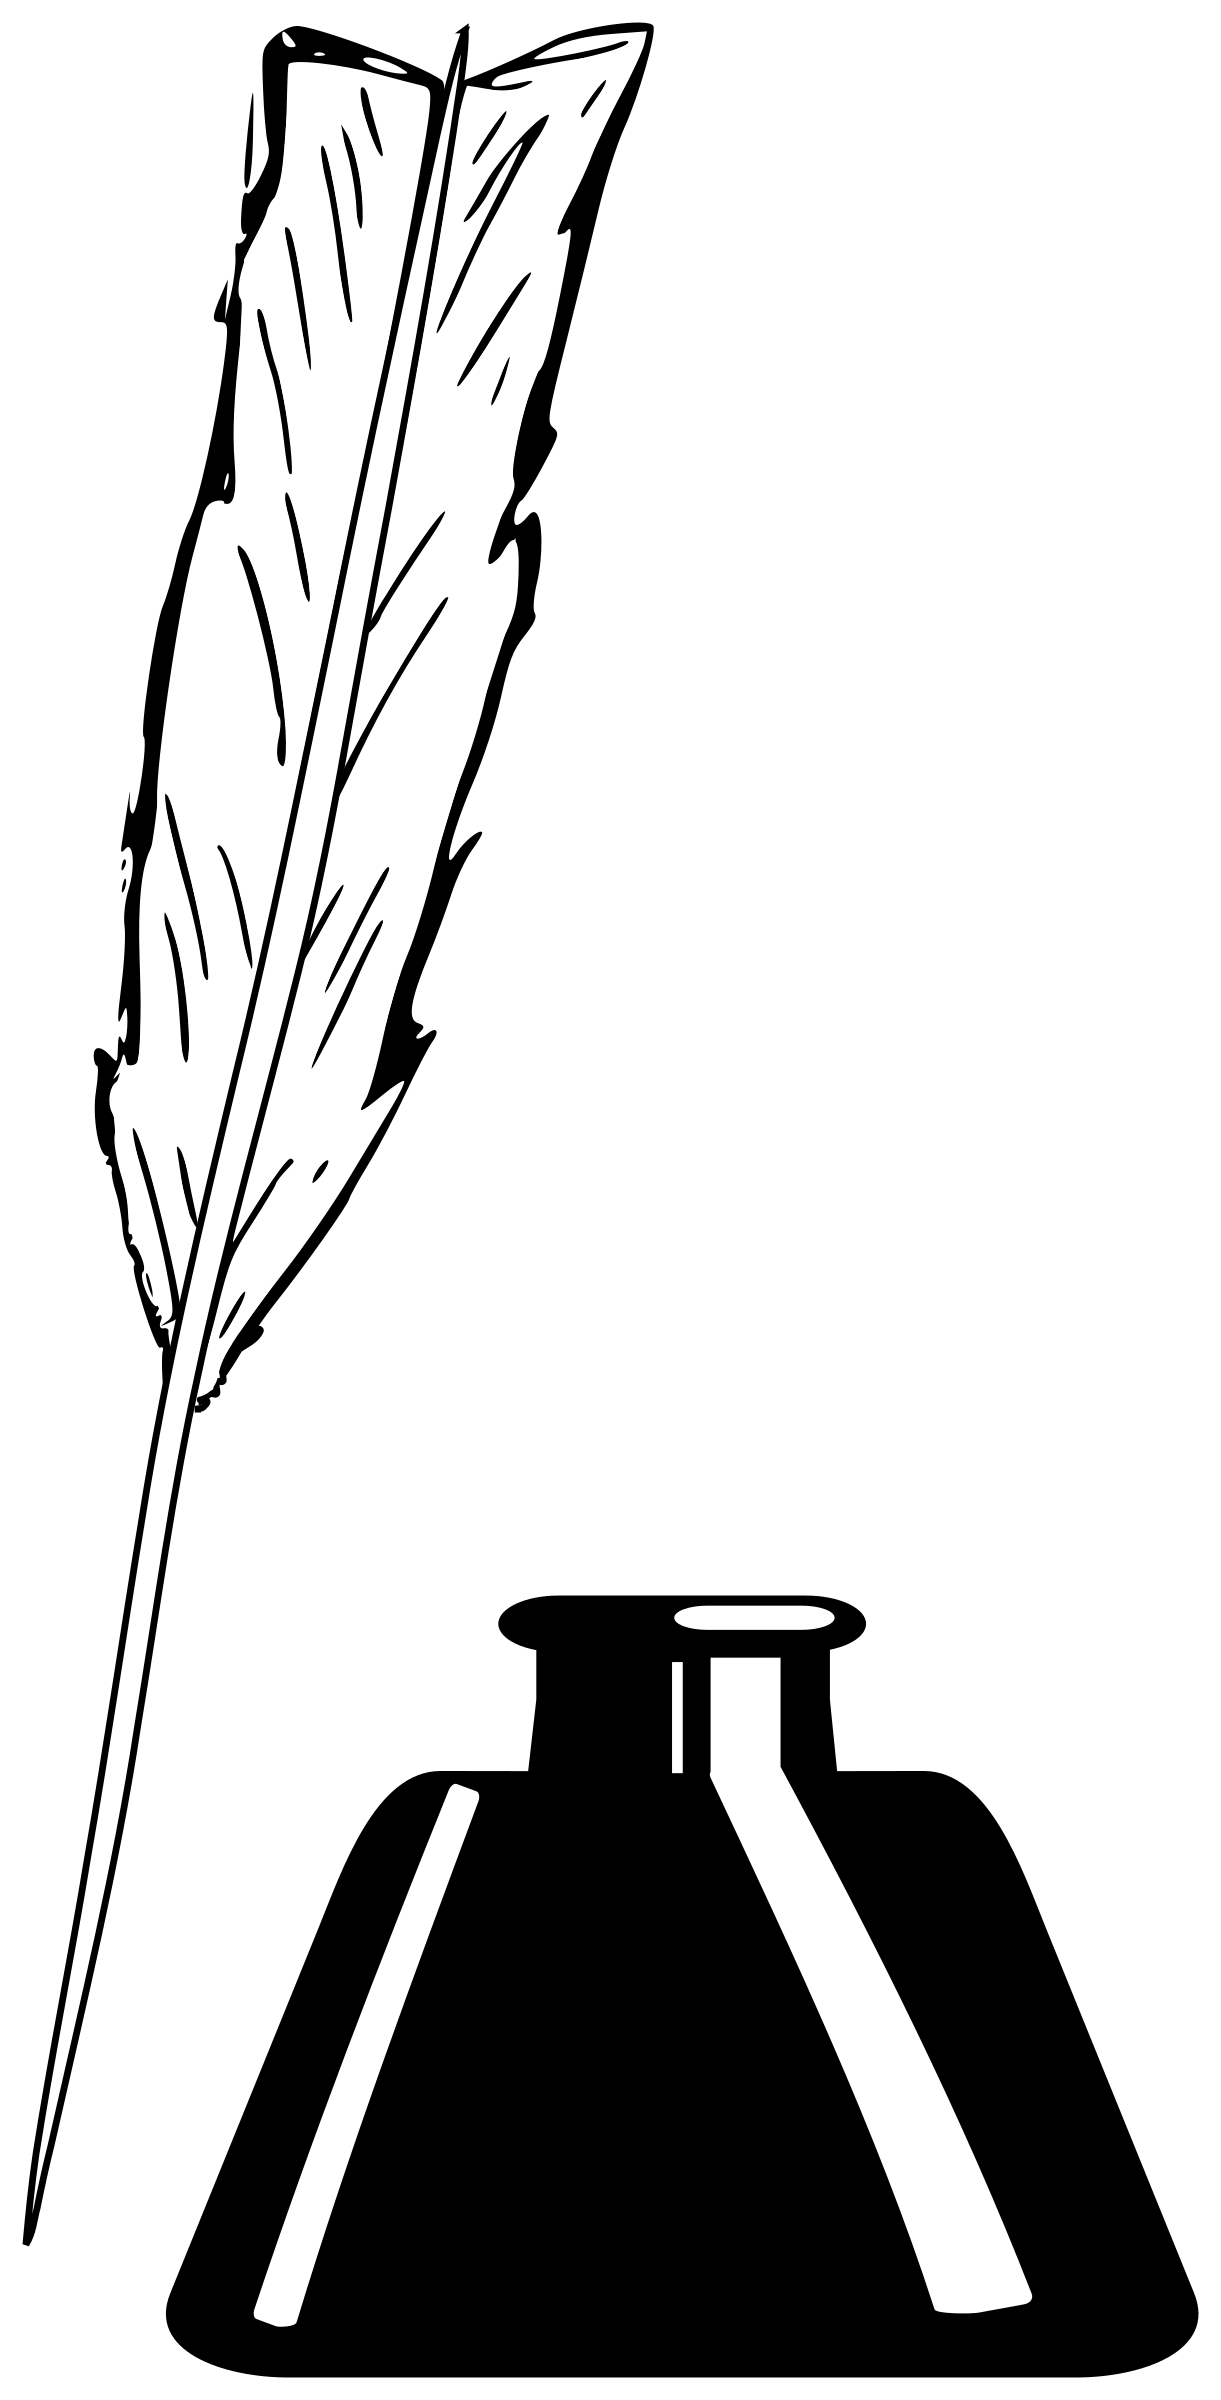 Quill And Inkwell Vector Clipart Image